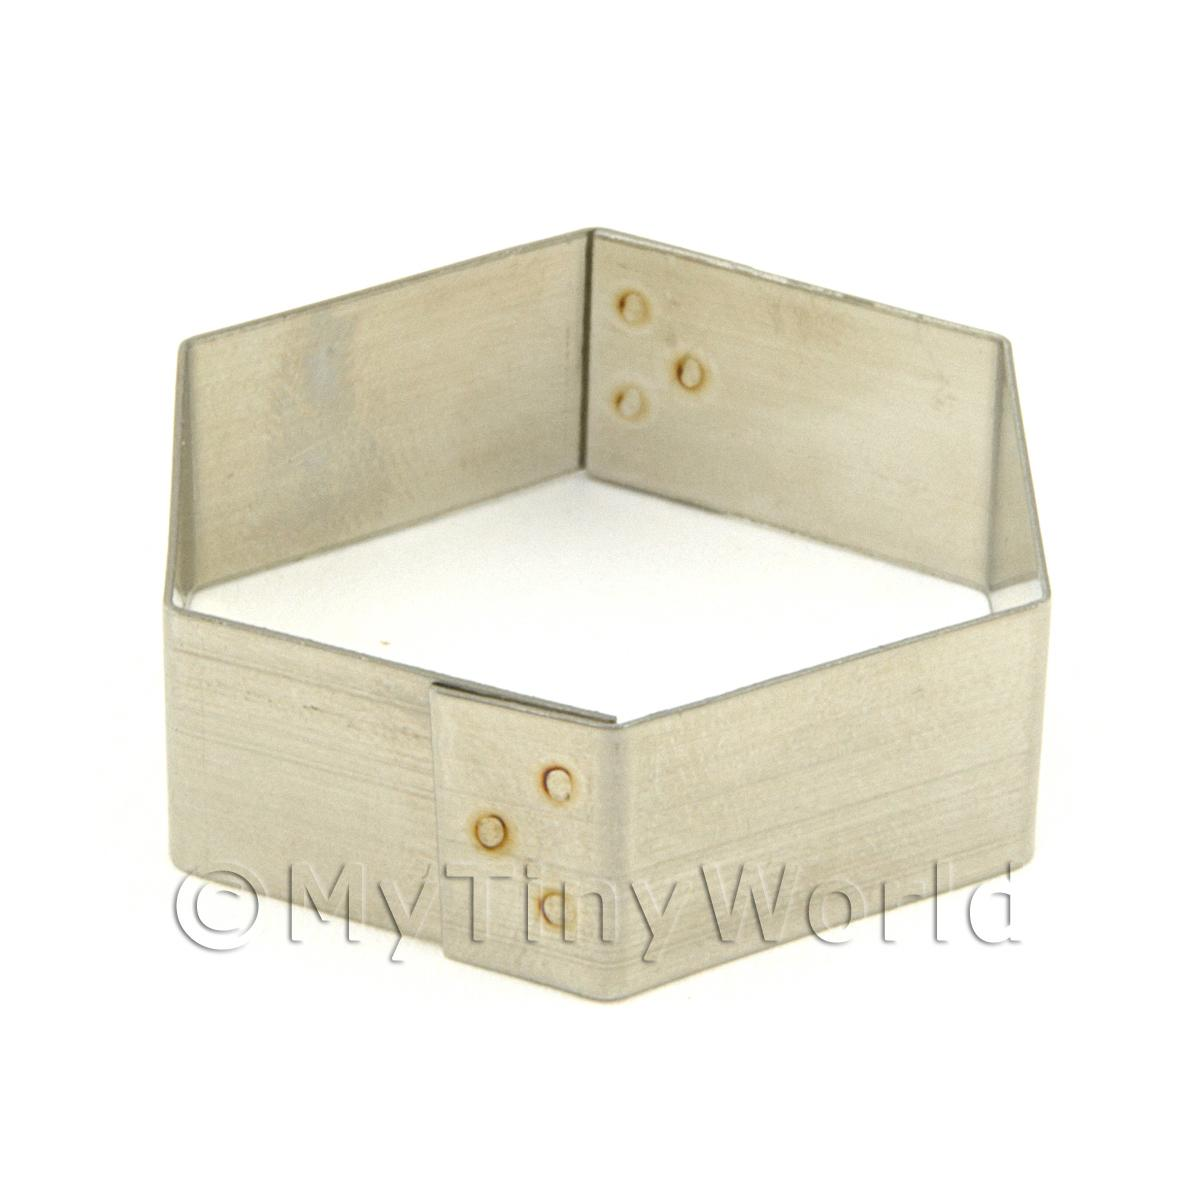 Metal Hexagonal Shape Sugarcraft / Clay Cutter (32mm)